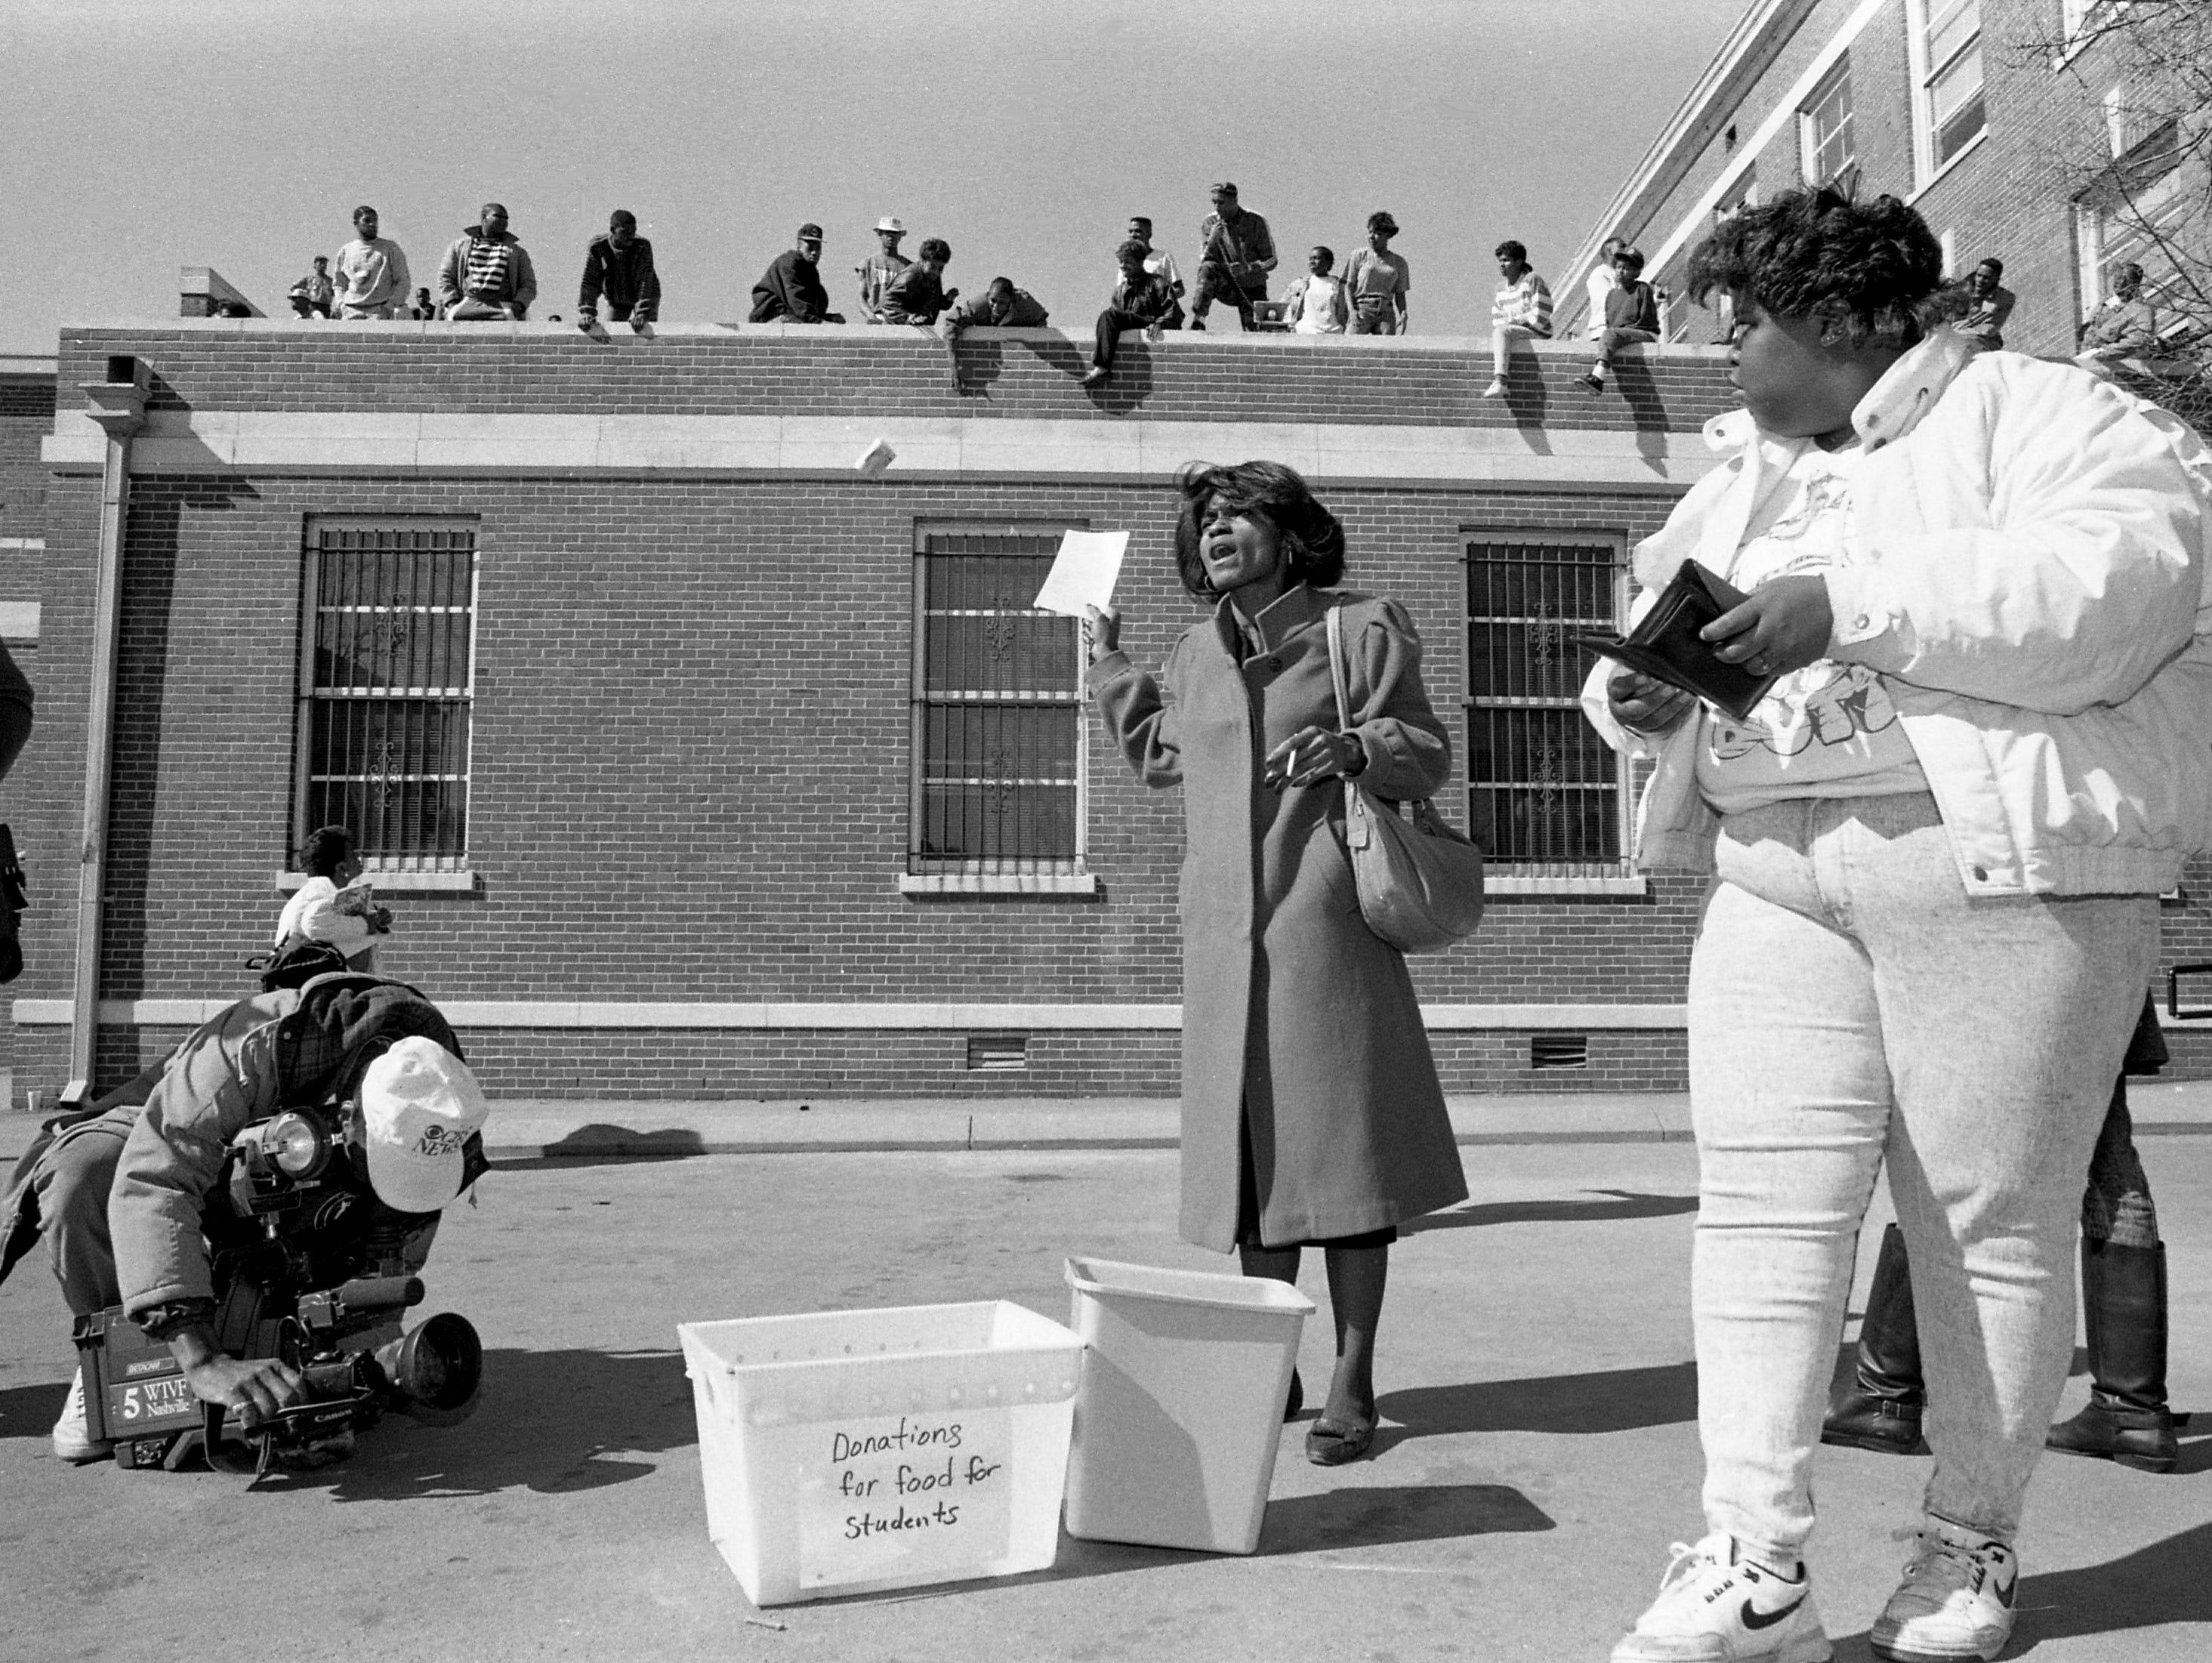 Take a look back at Nashville history with a gallery of photos of TSU students protesting campus problems in 1990, curated exclusively for Insiders.